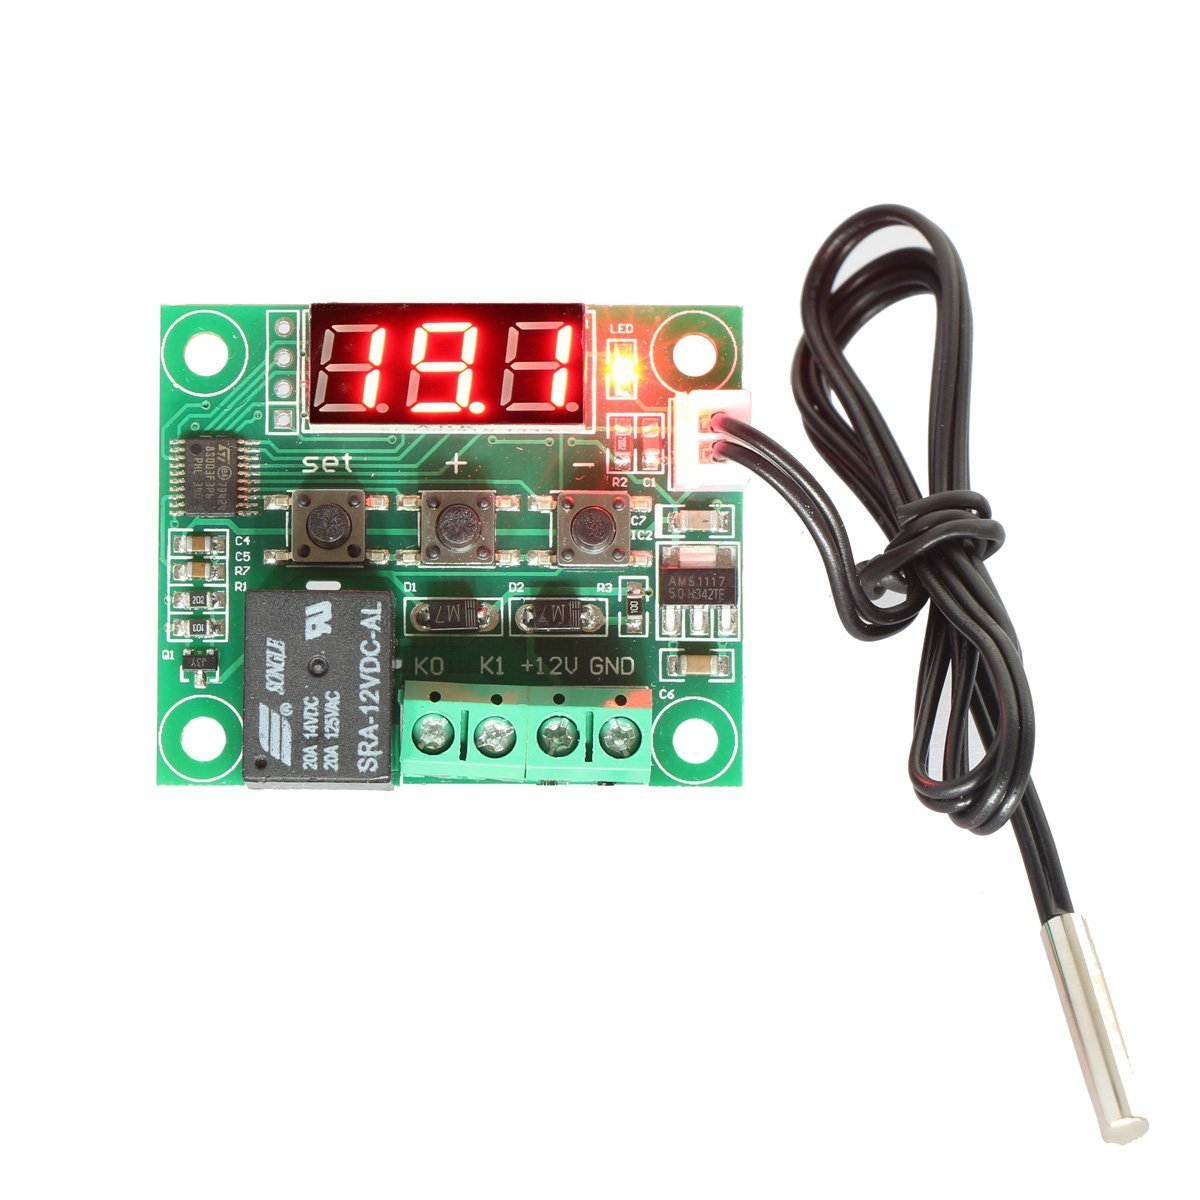 Riorand 12v Dc Digital Cooling Heating Thermostat Temp Control 50 Drive Relay By Circuit 110 C Temperature Controller 10a With Waterproof Sensor Probe